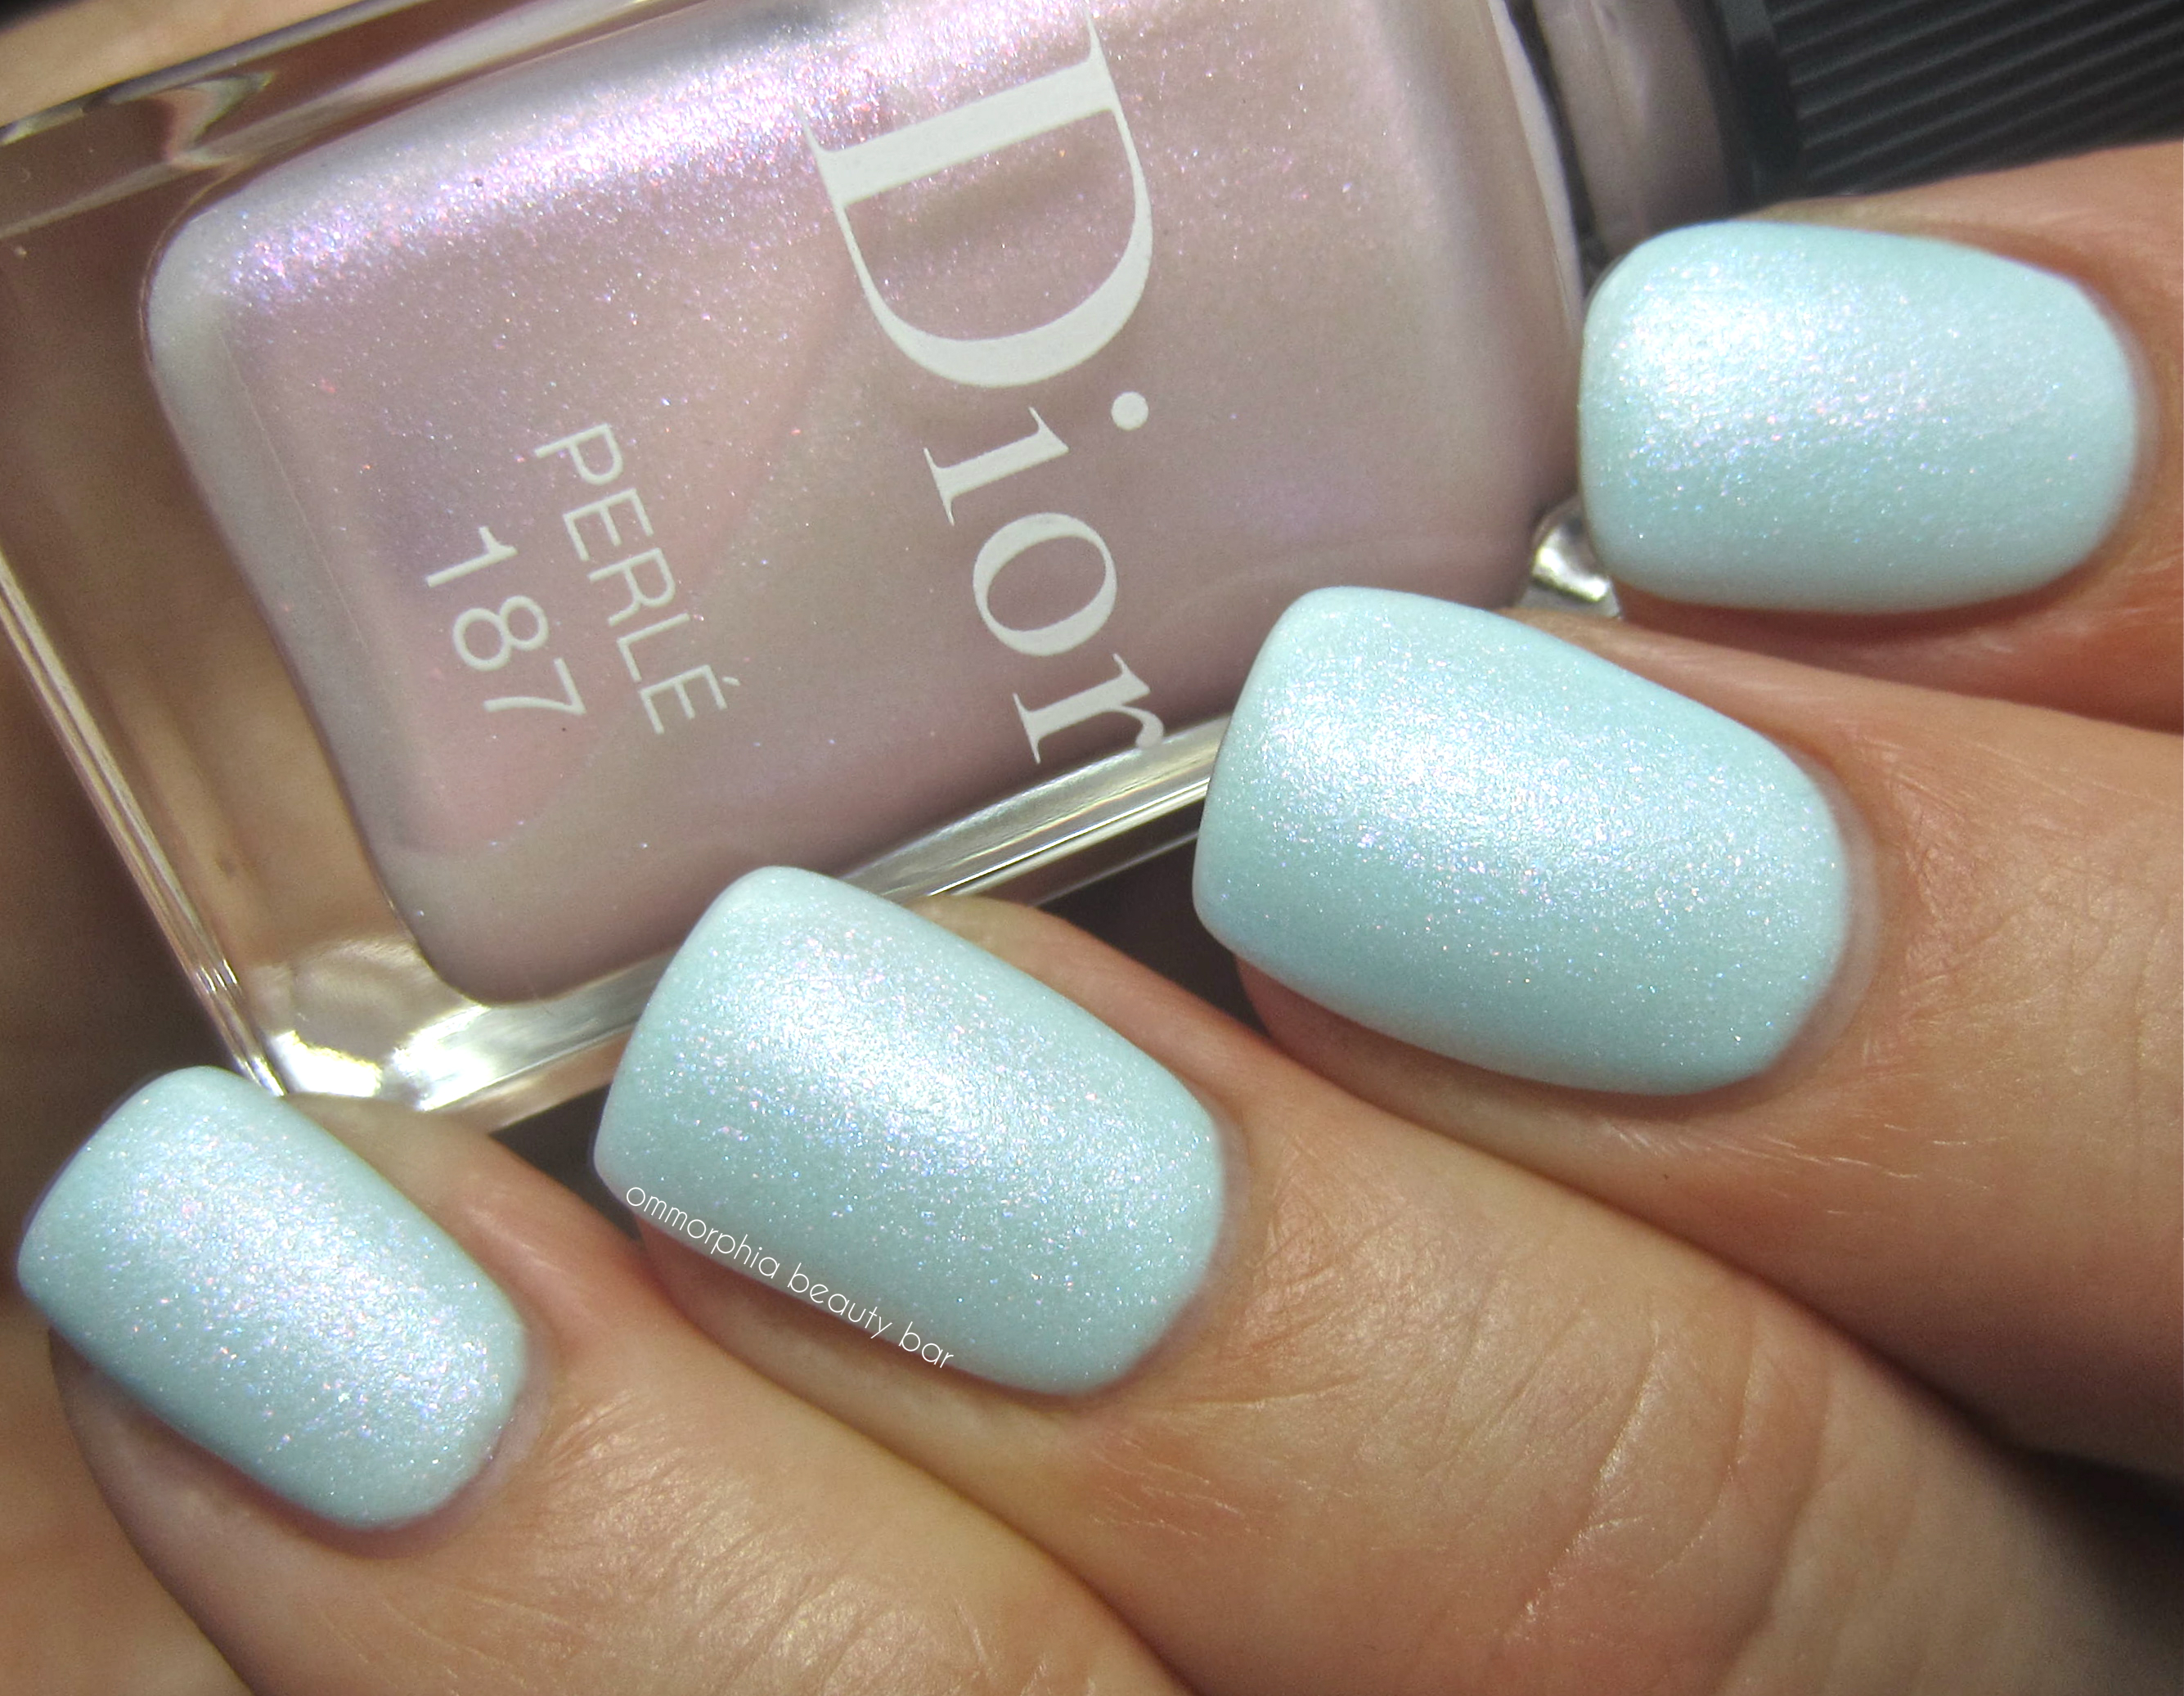 Dior Perle over Porcelaine swatch